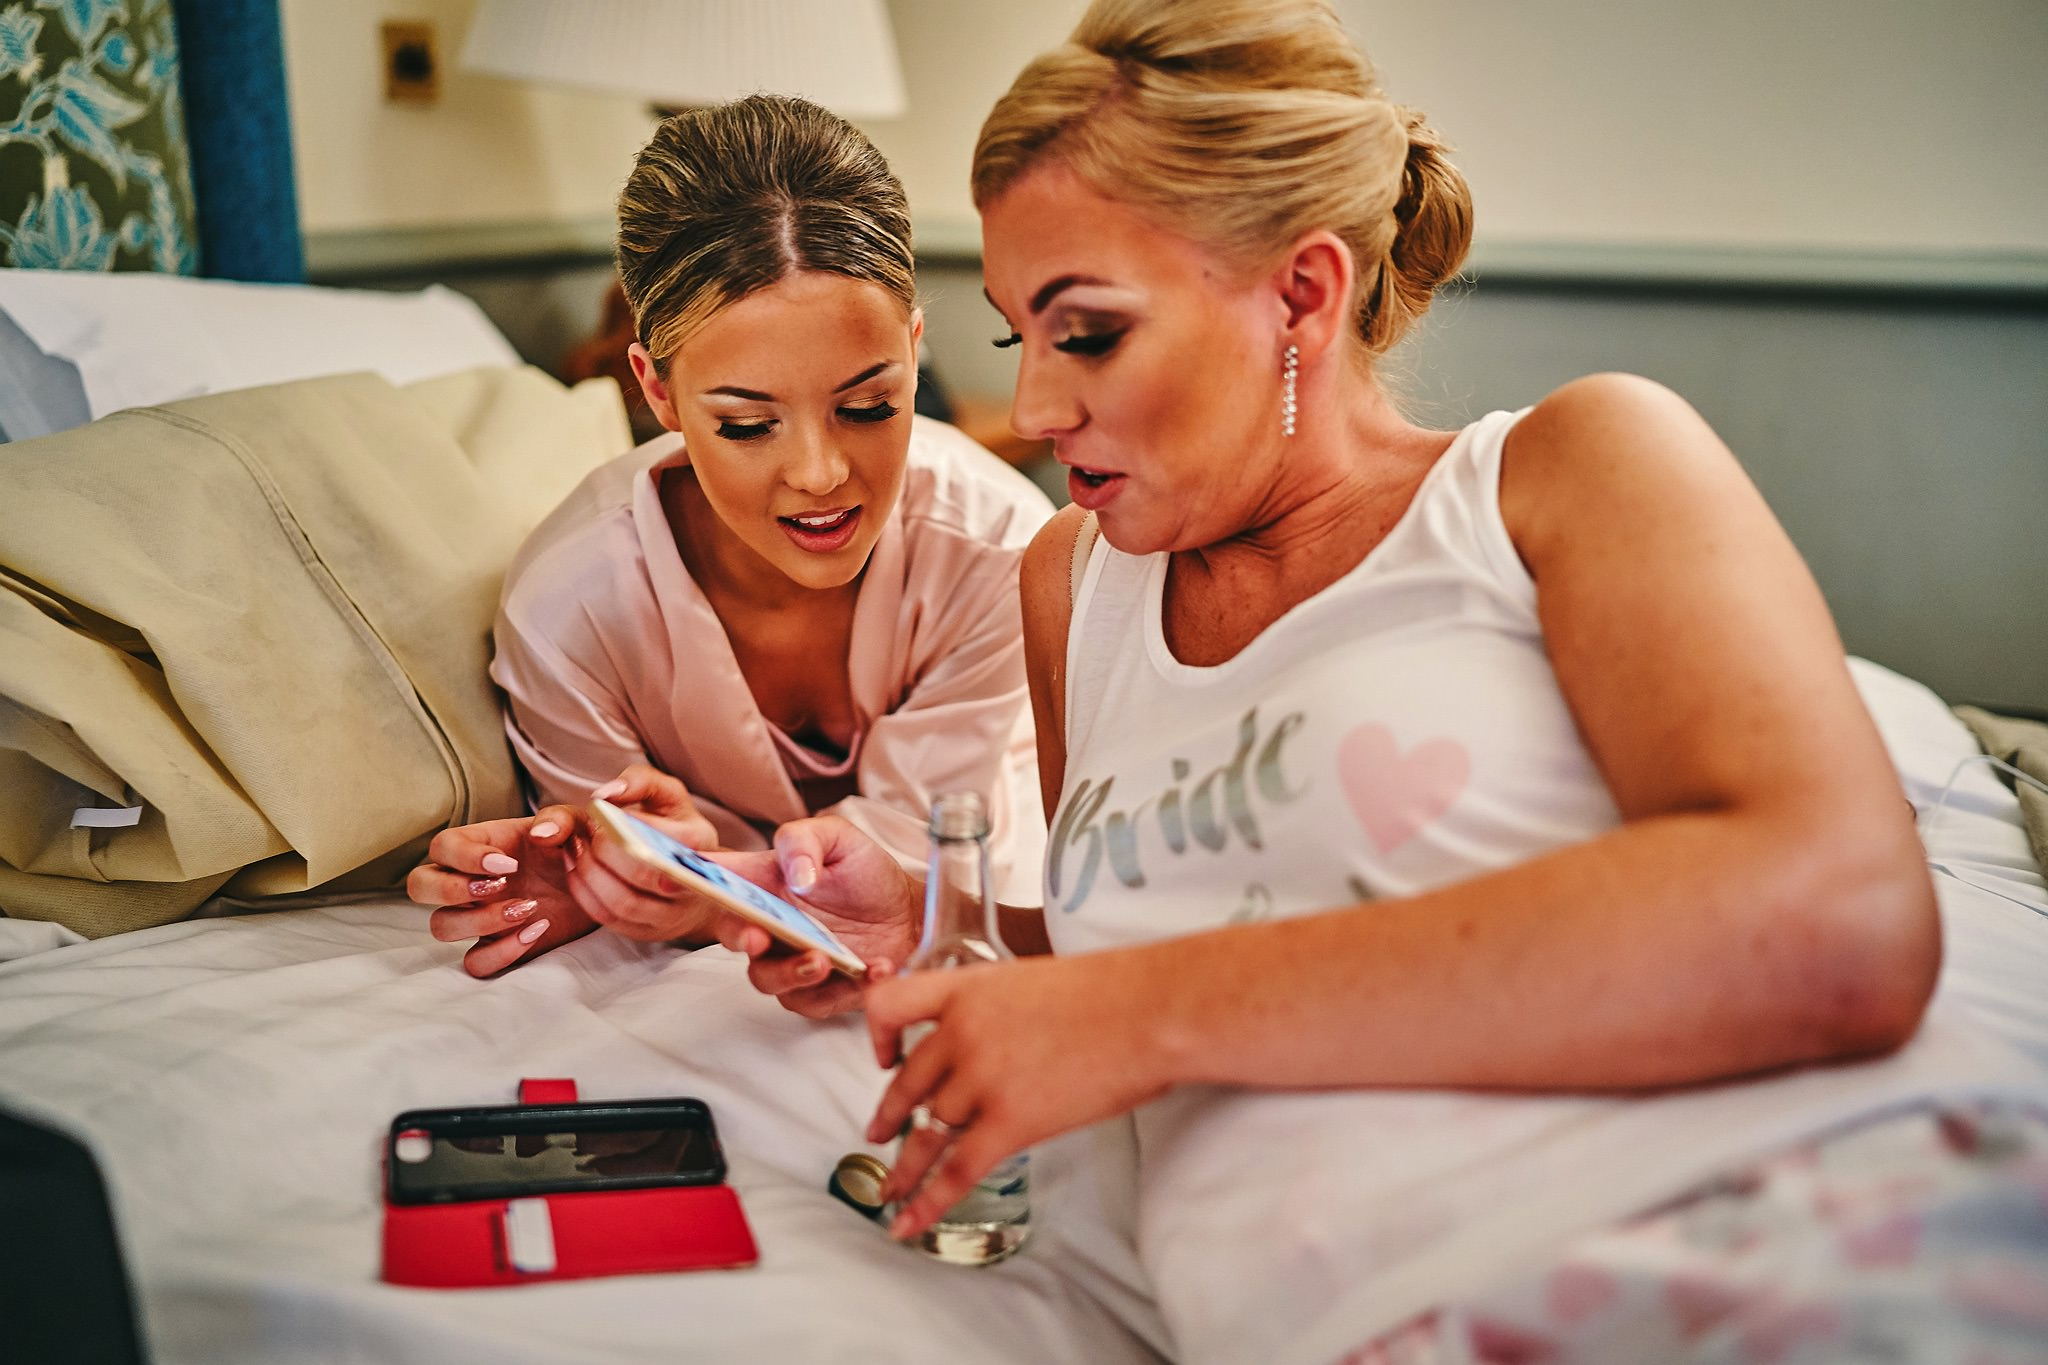 Bride and her daughter check their phones